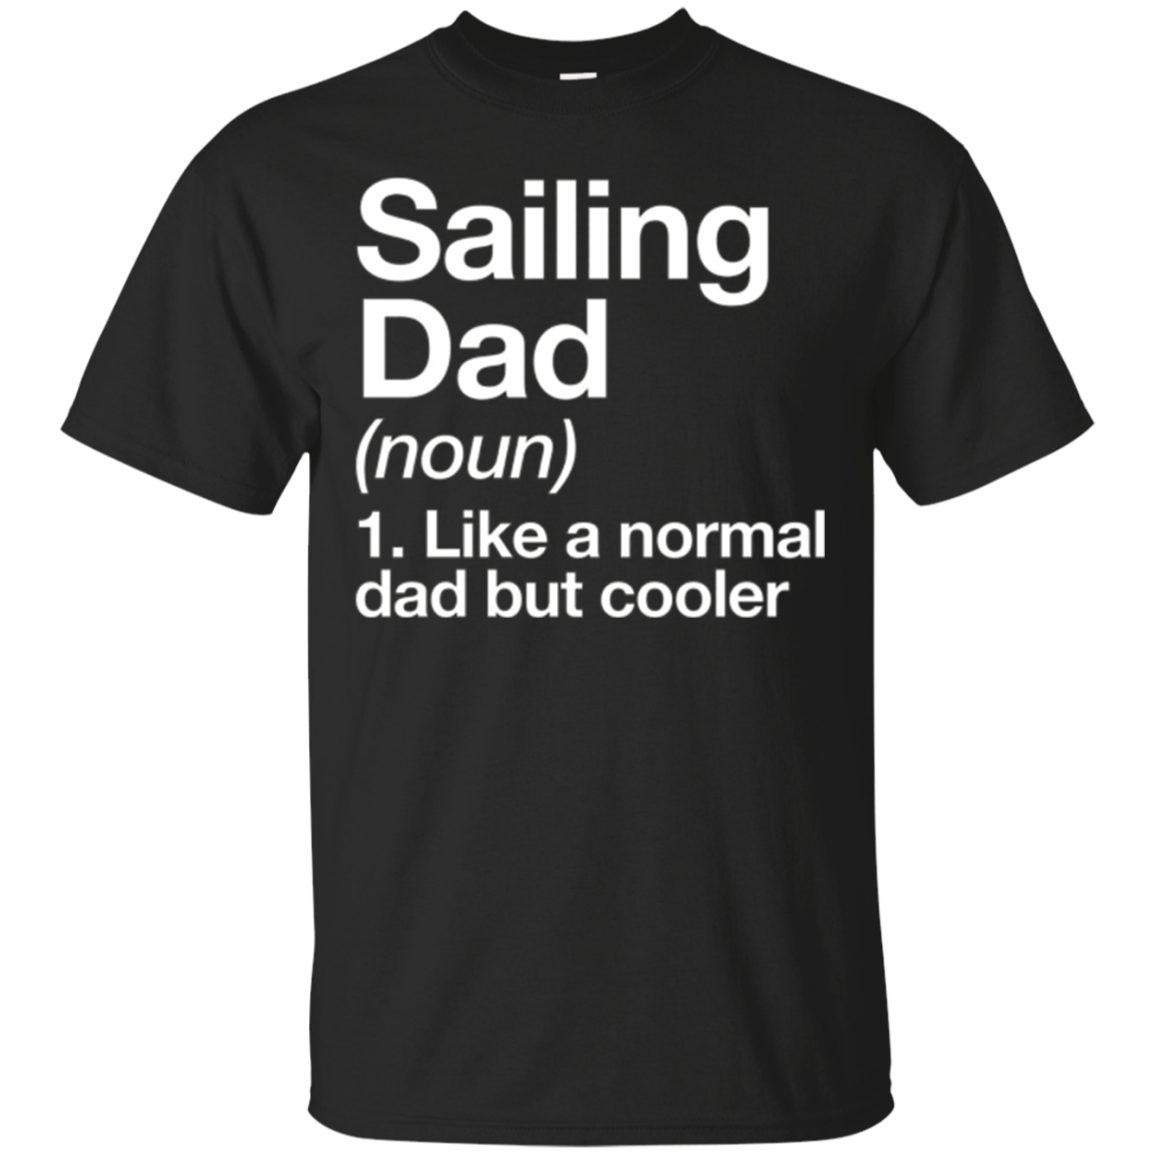 Sailing Dad Definition T-shirt Funny Sports Tee